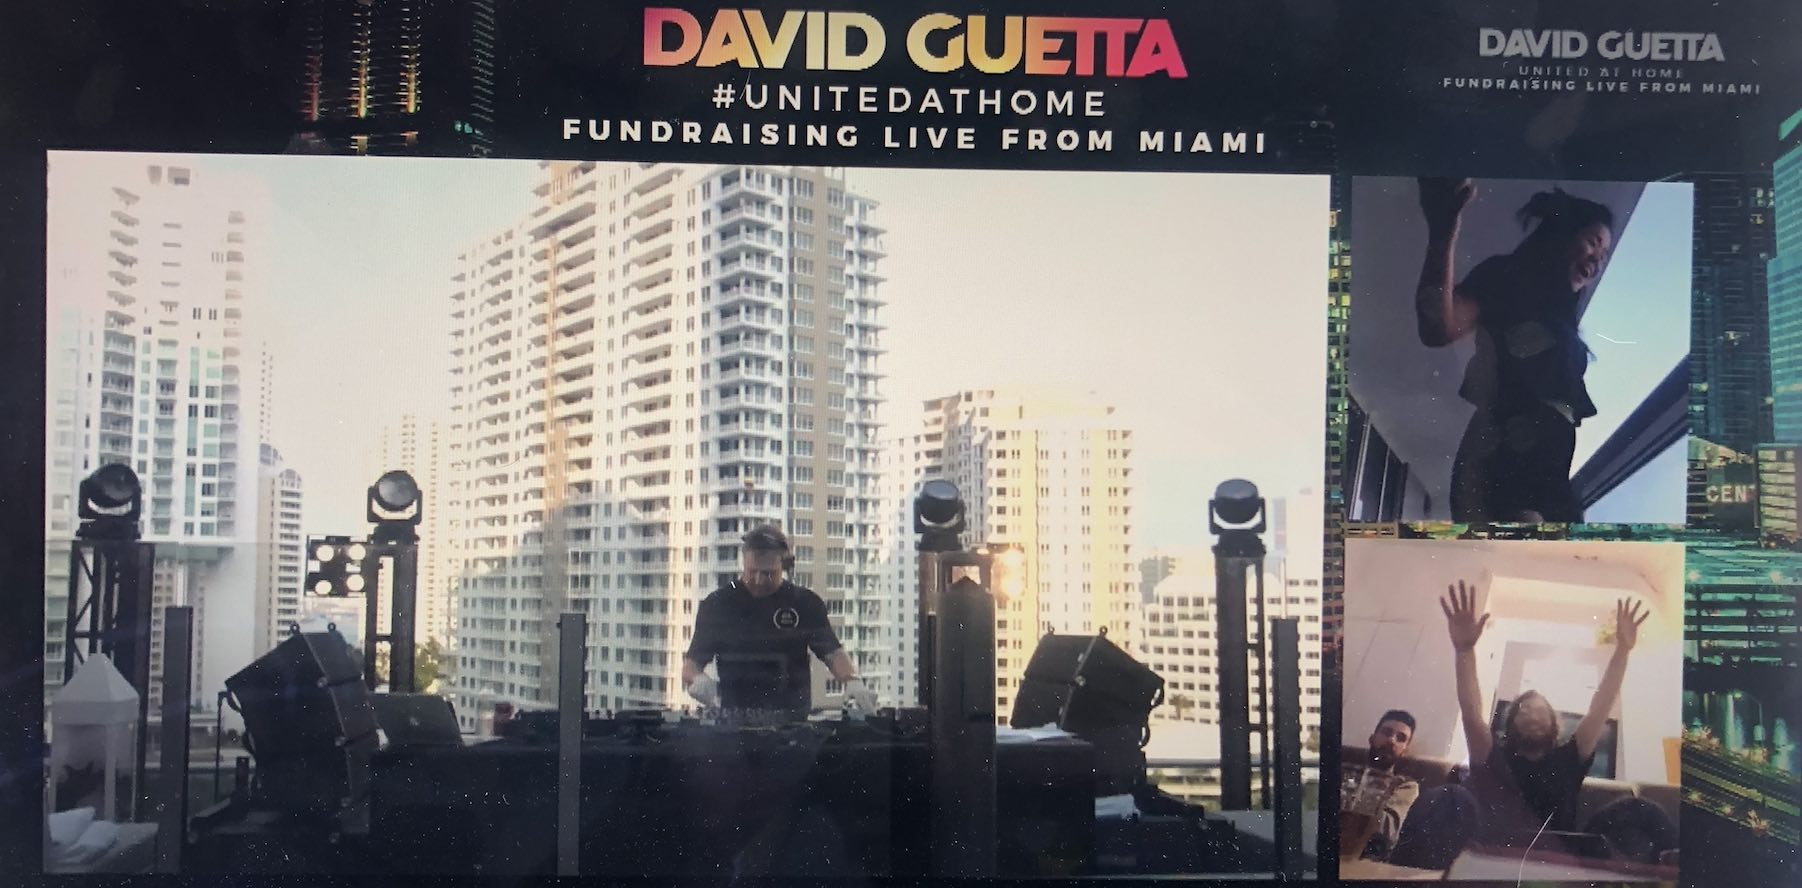 David Guetta - United At Home - Concert - Confinement - Miami